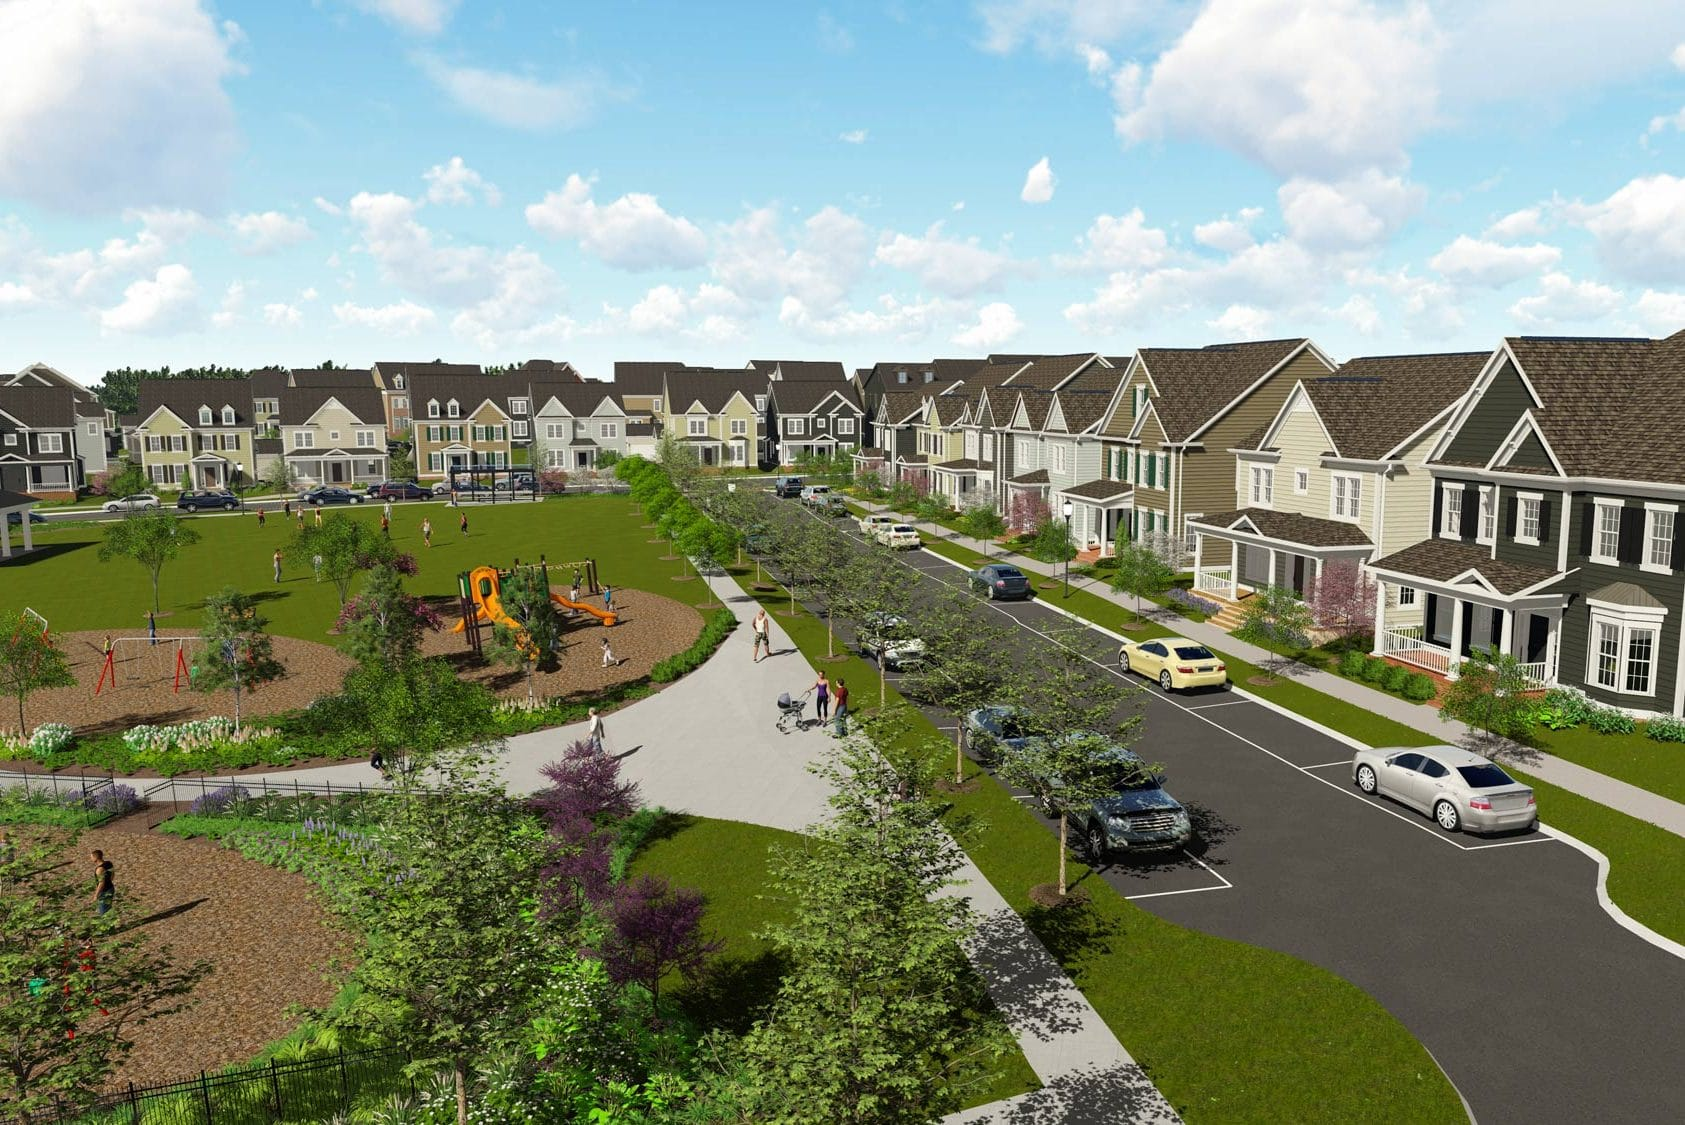 A rendering of the Greenleigh community showing single-family homes surrounding a park with playground and trees